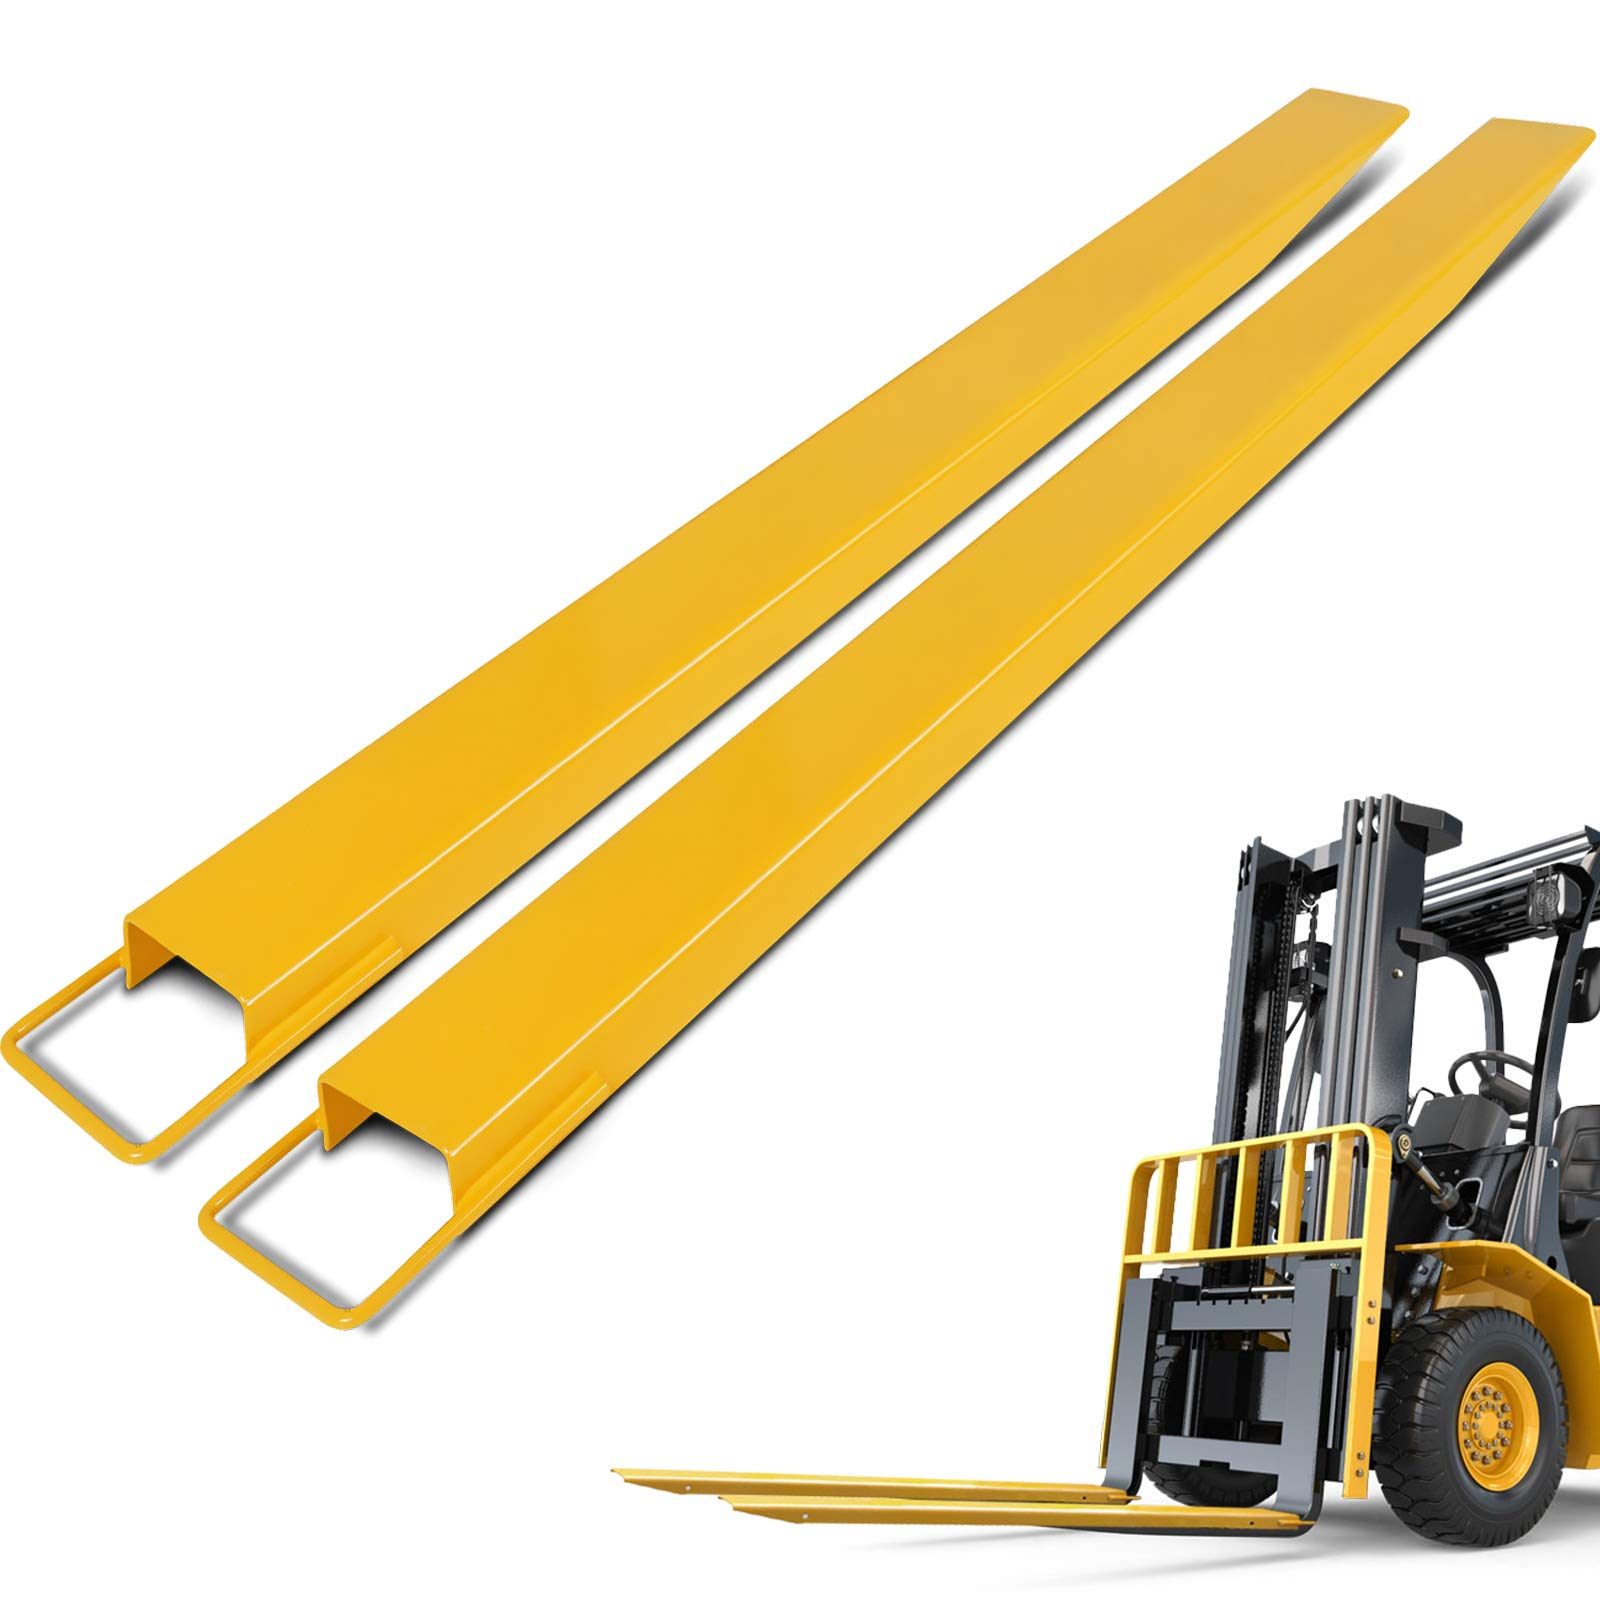 BestEquip 60 Inch x 4.5 Inch Pallet Forks Extensions Steel Pallet Forks Forklift Pallet Fork Extensions for Forklift Lift Truck (60'' x 4.5'')